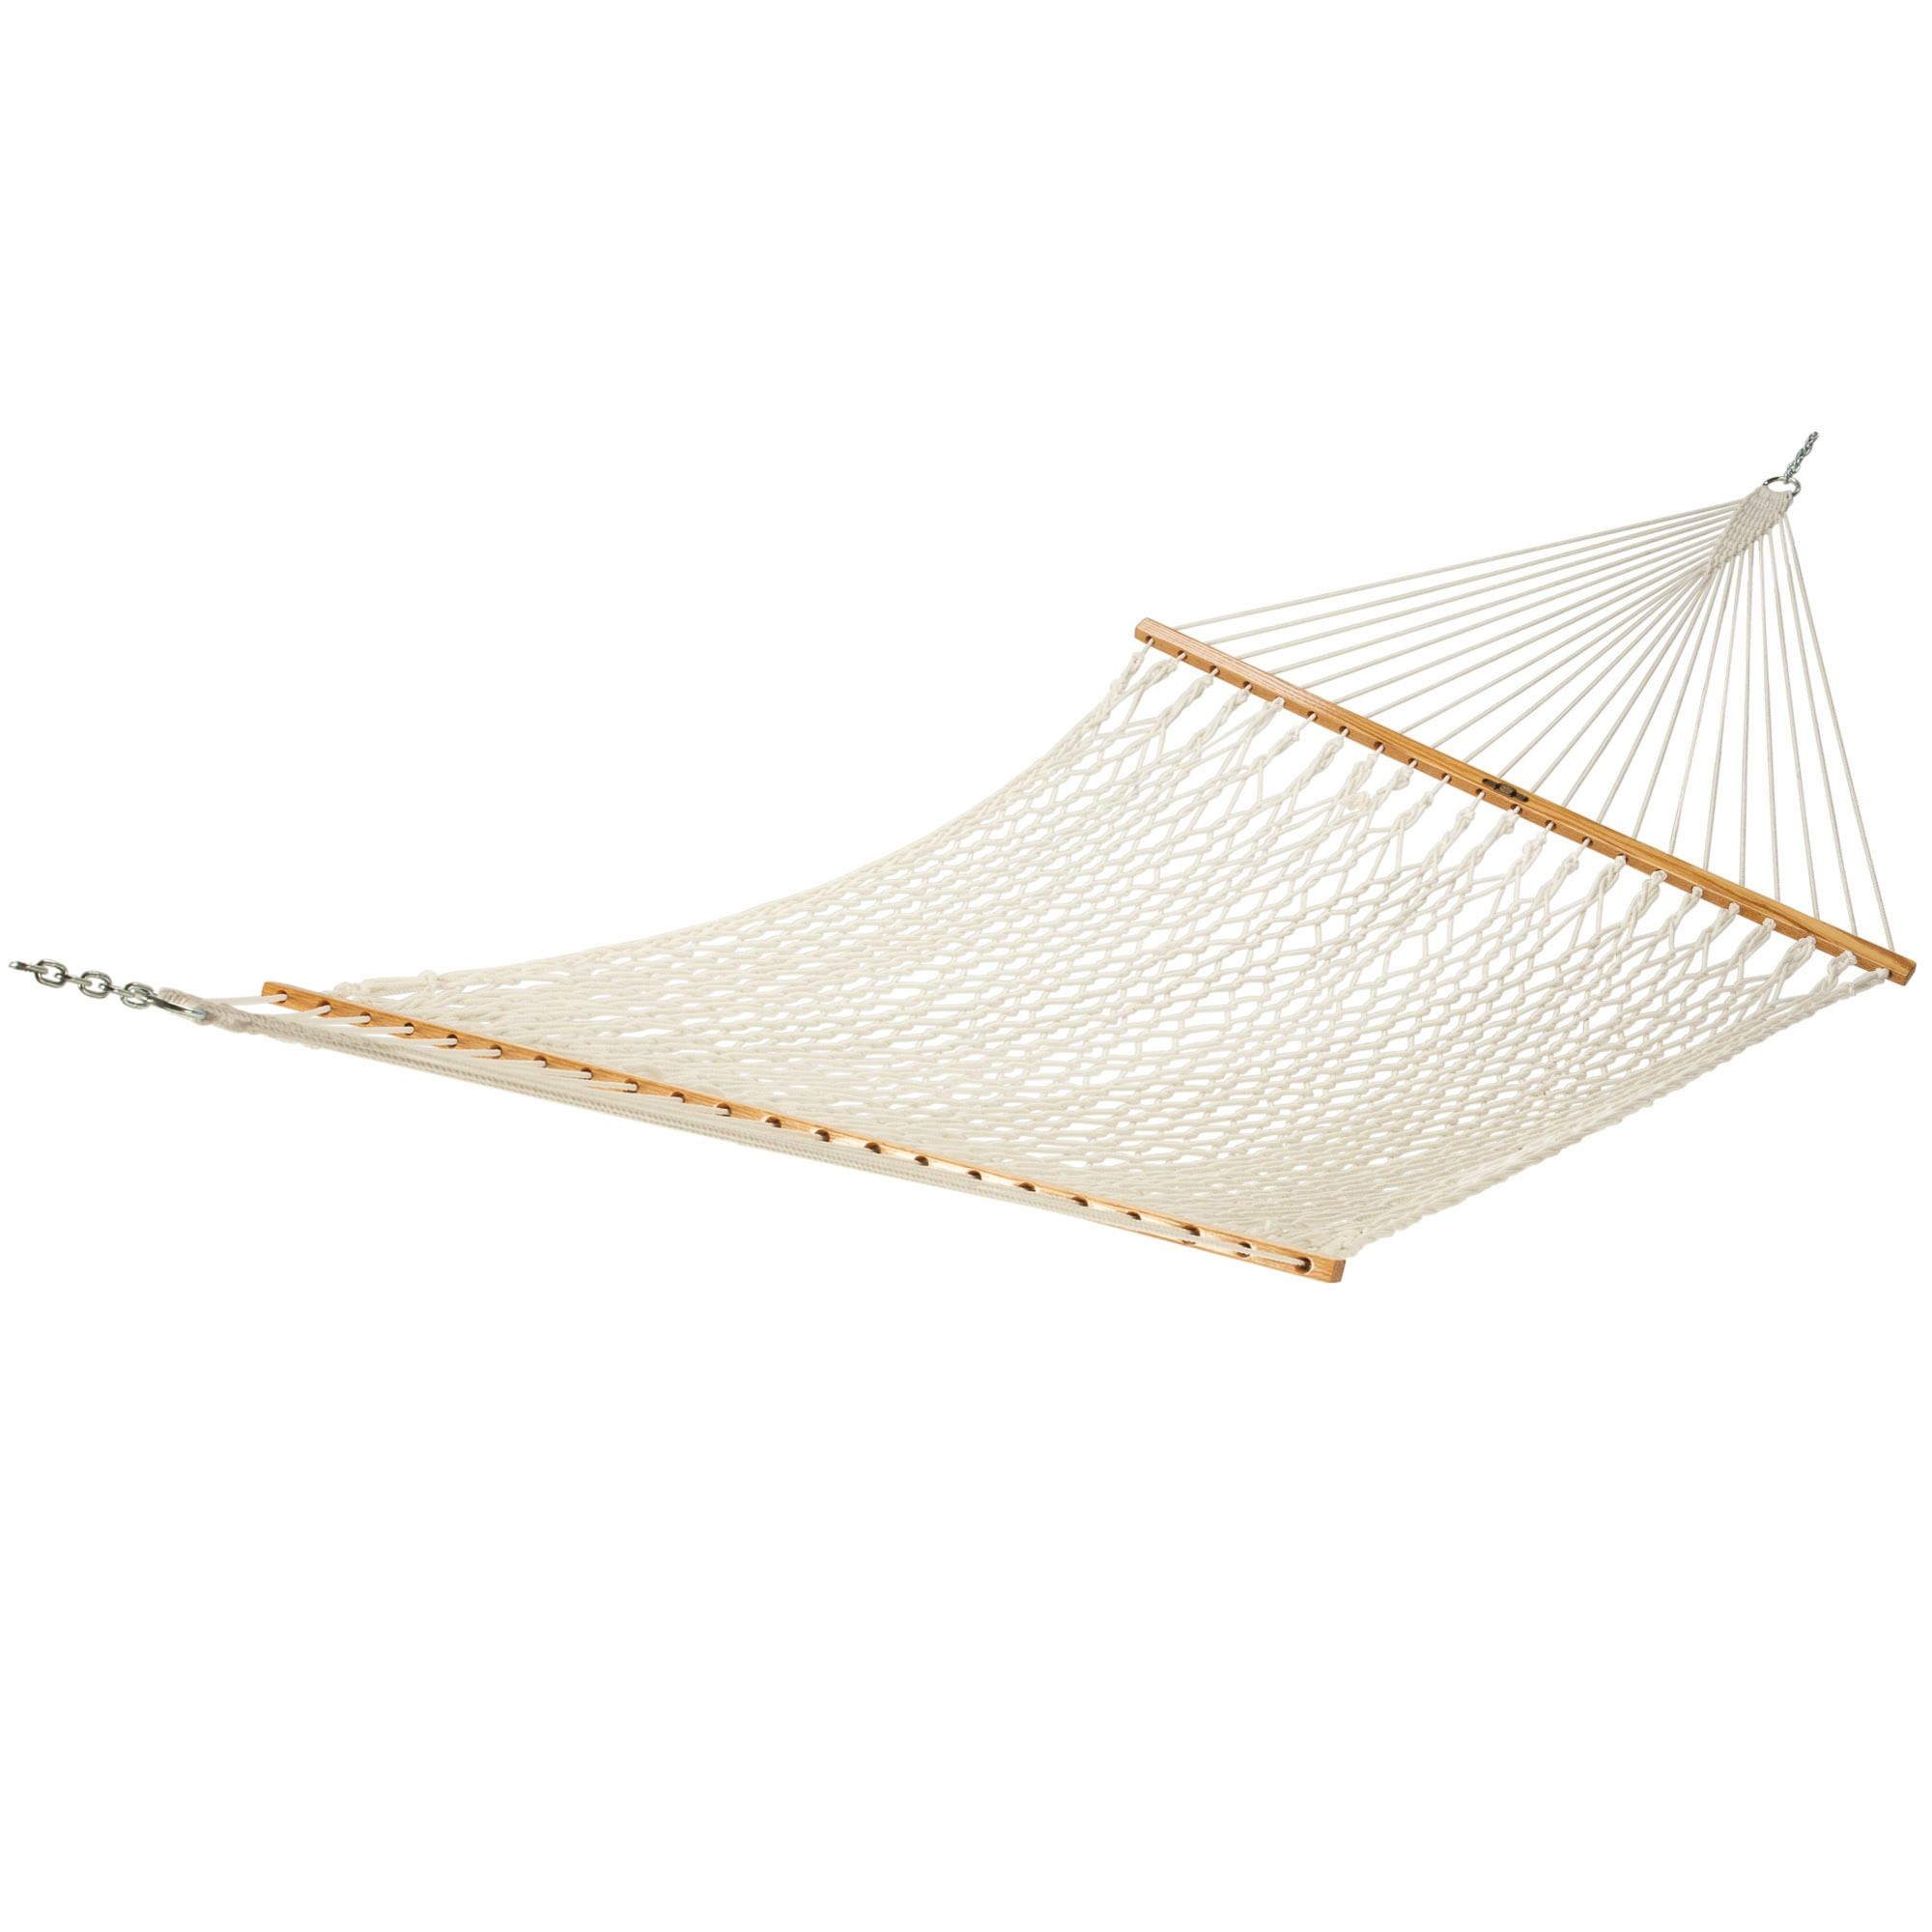 single original cotton rope hammock original cotton rope hammock  rh   pawleysislandhammocks